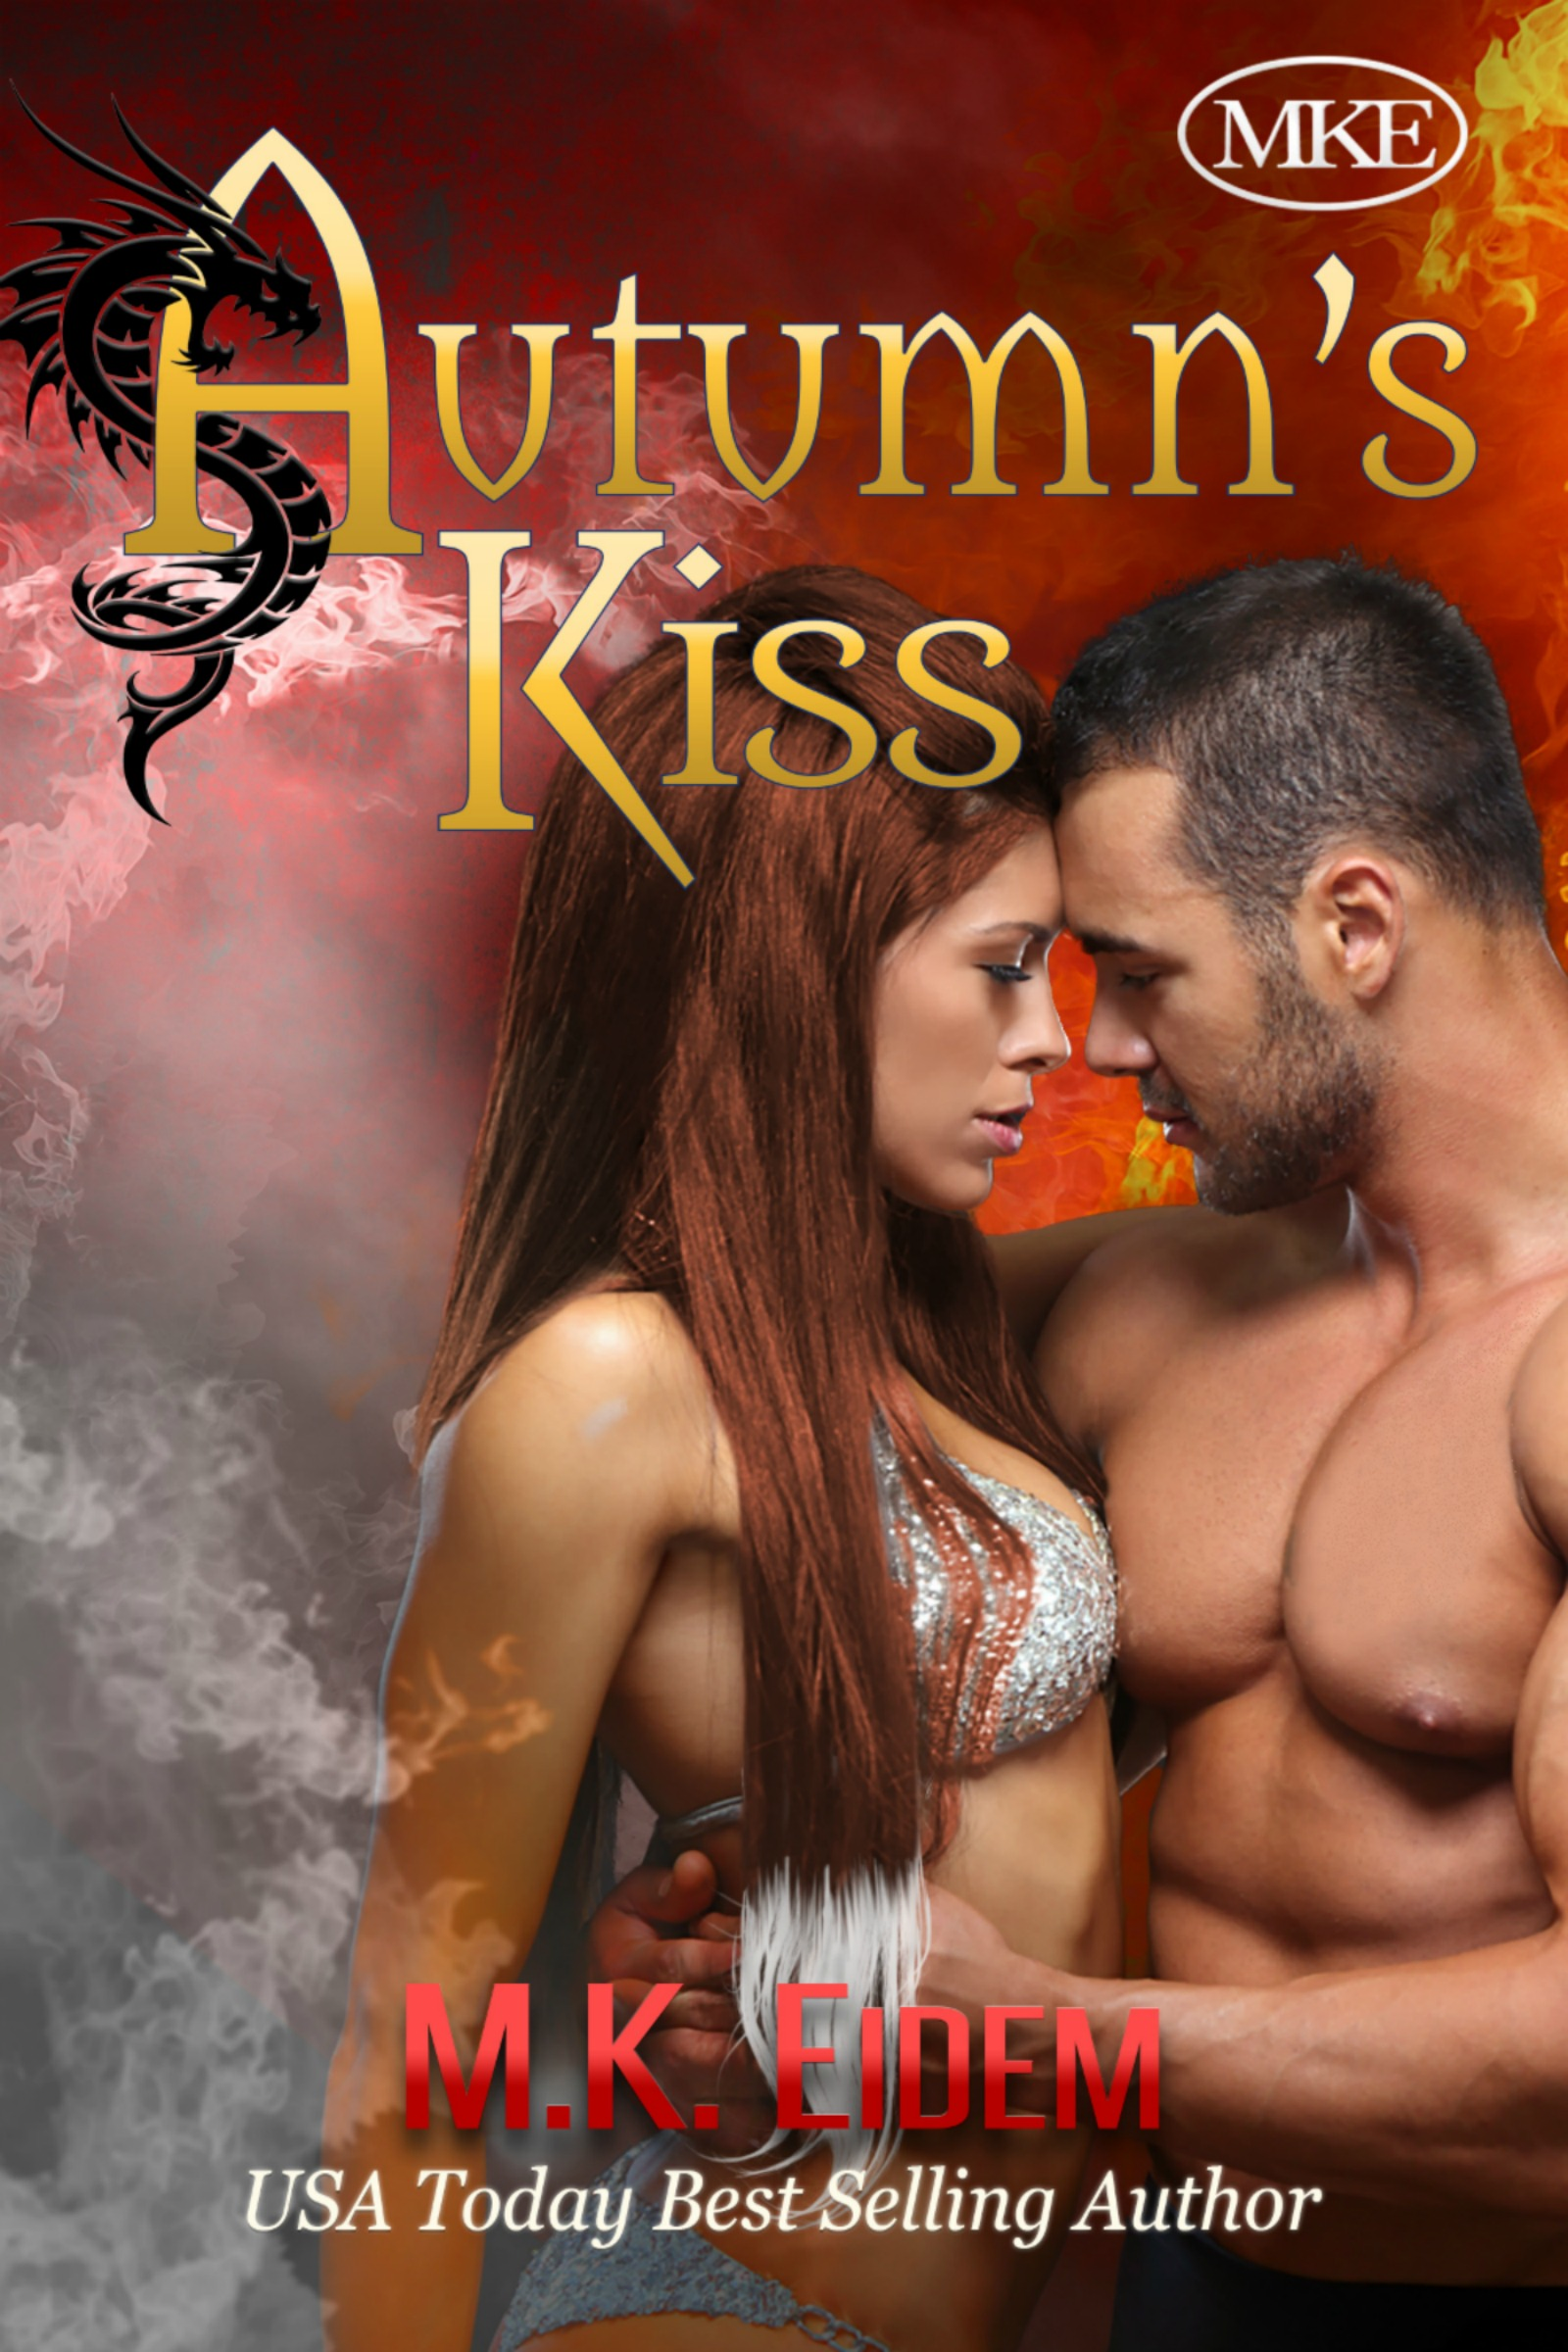 Autumn's Kiss - Book 2 of the Kiss Series by MK Eidem